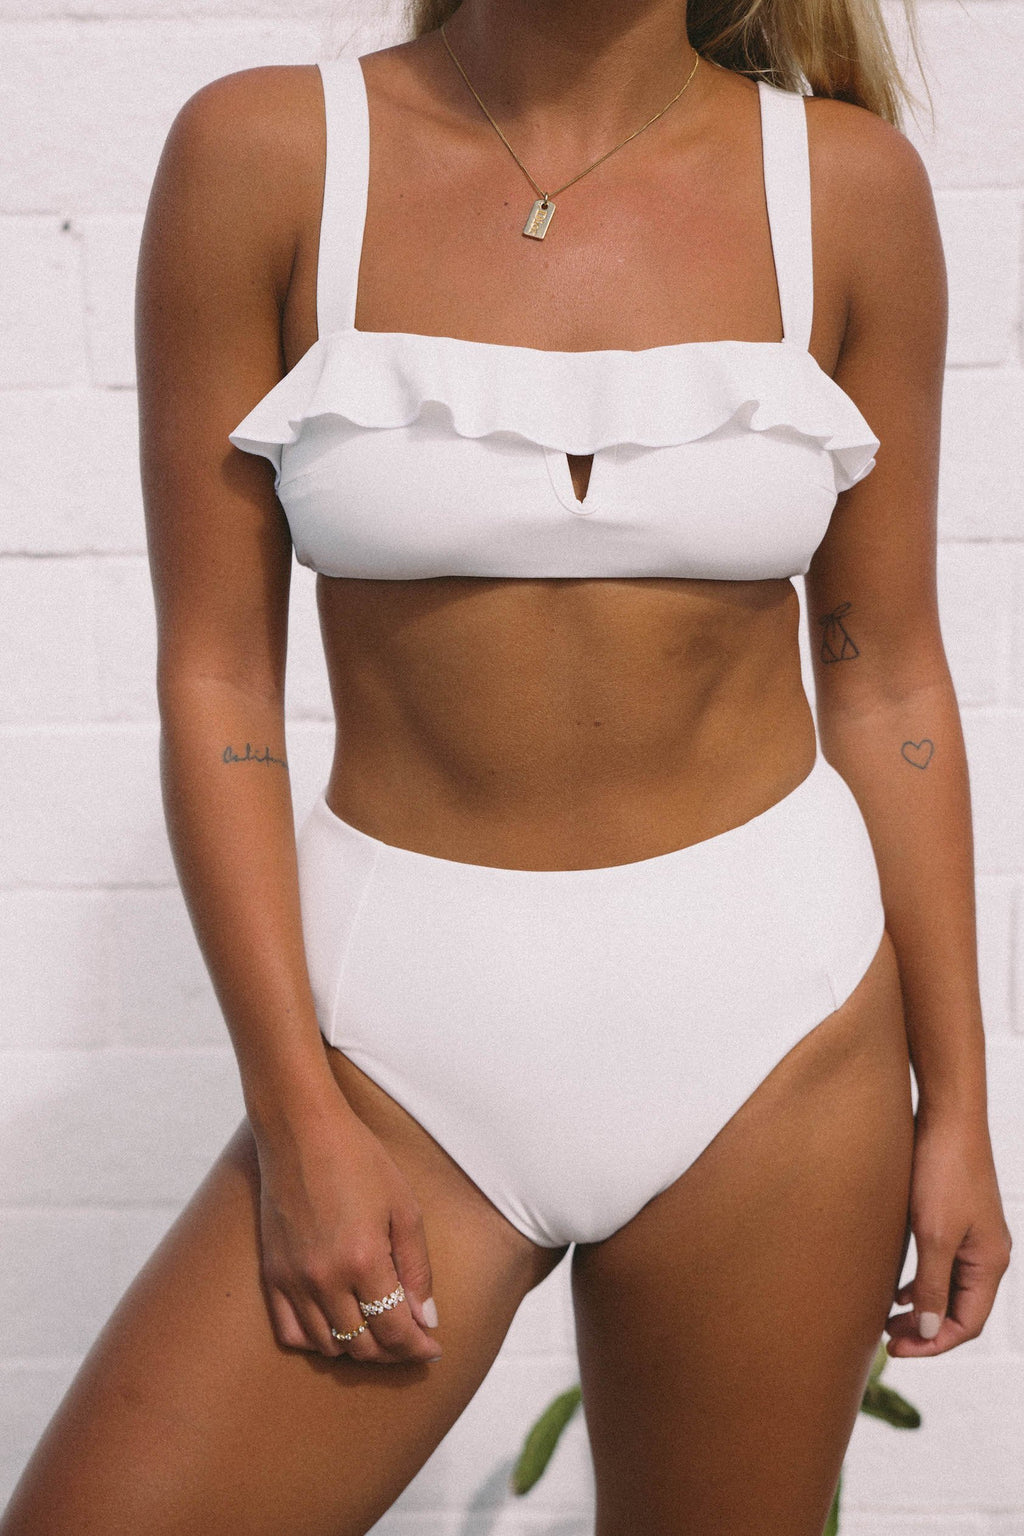 Ete Swimwear Ete X Matilda - Santa Cruz Bottoms (Shell) - Nomads Cove